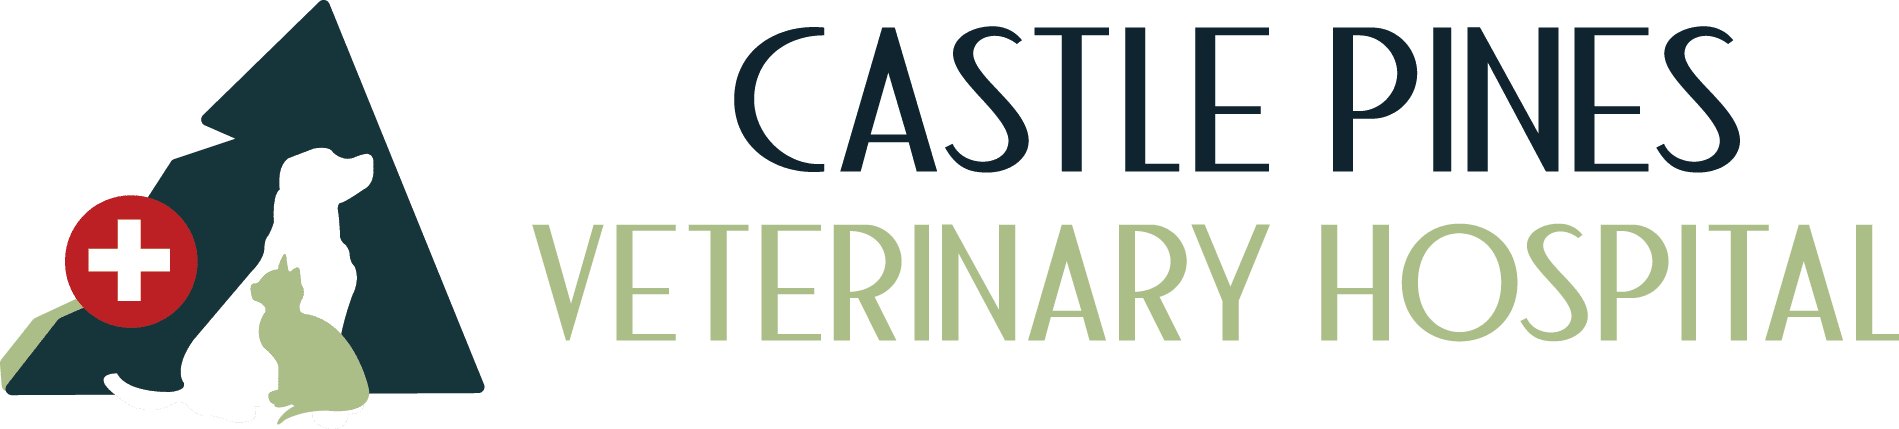 Castle Pines Veterinary Hospital